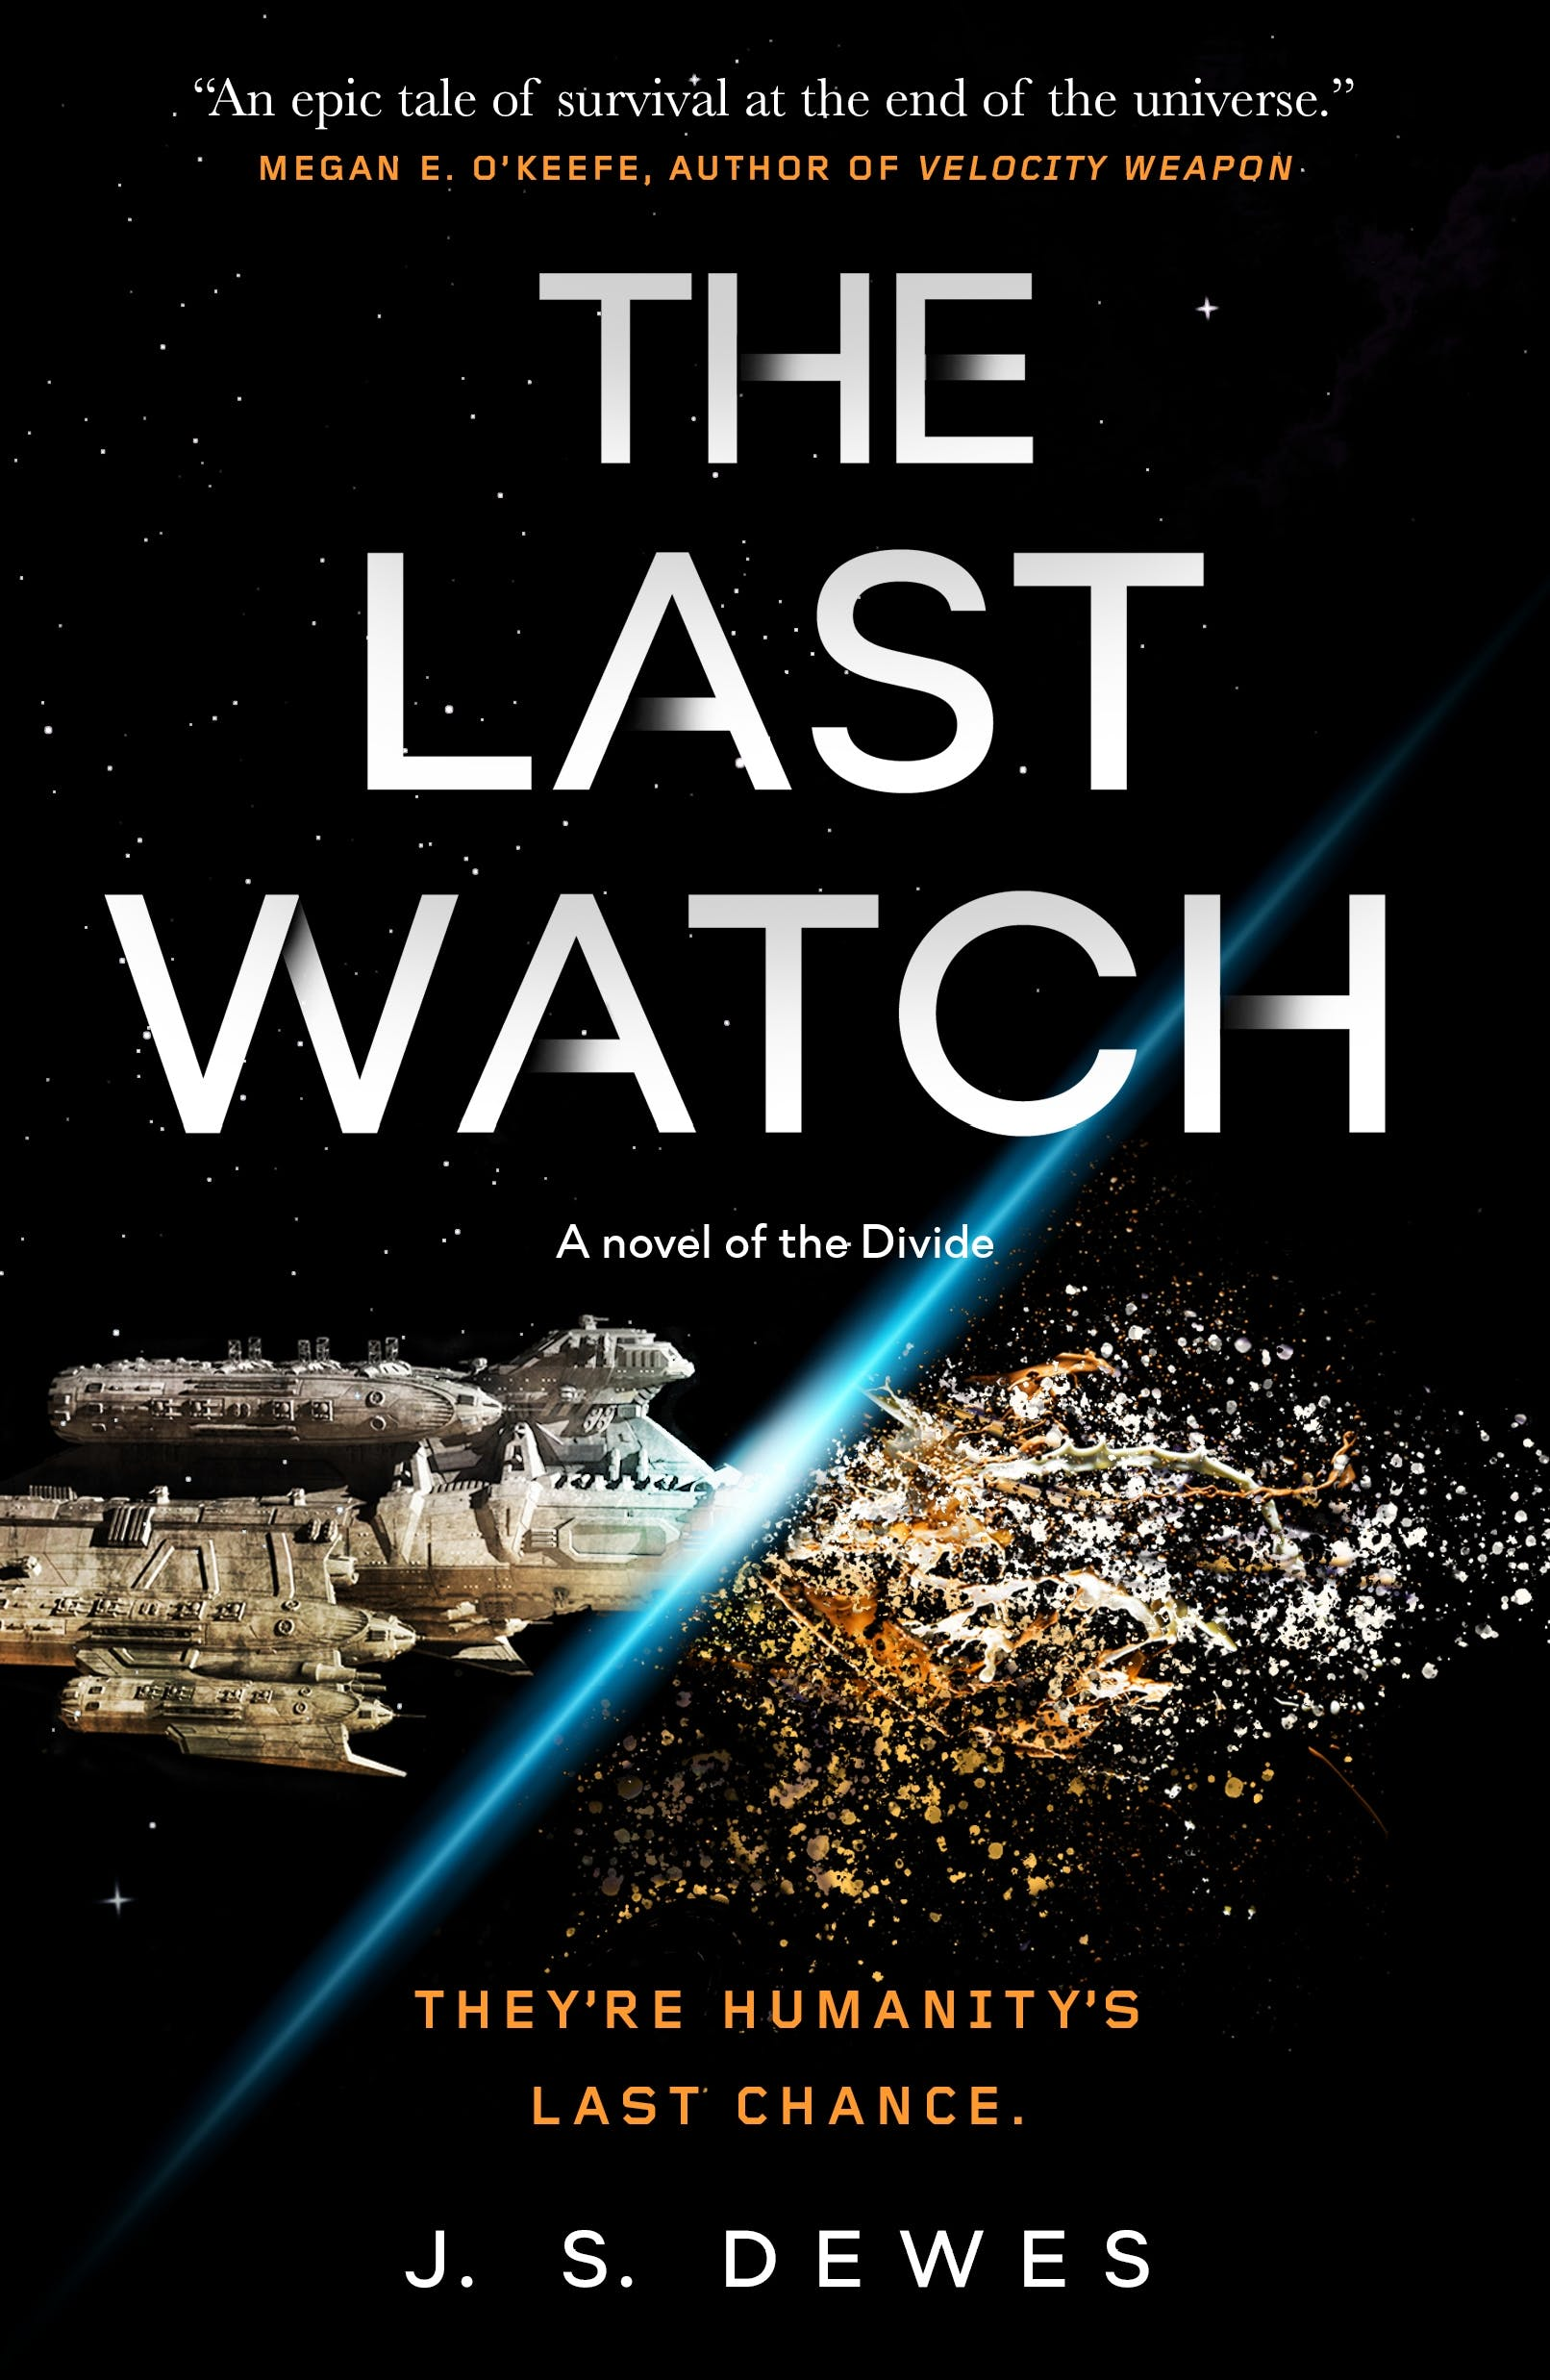 Image of The Last Watch